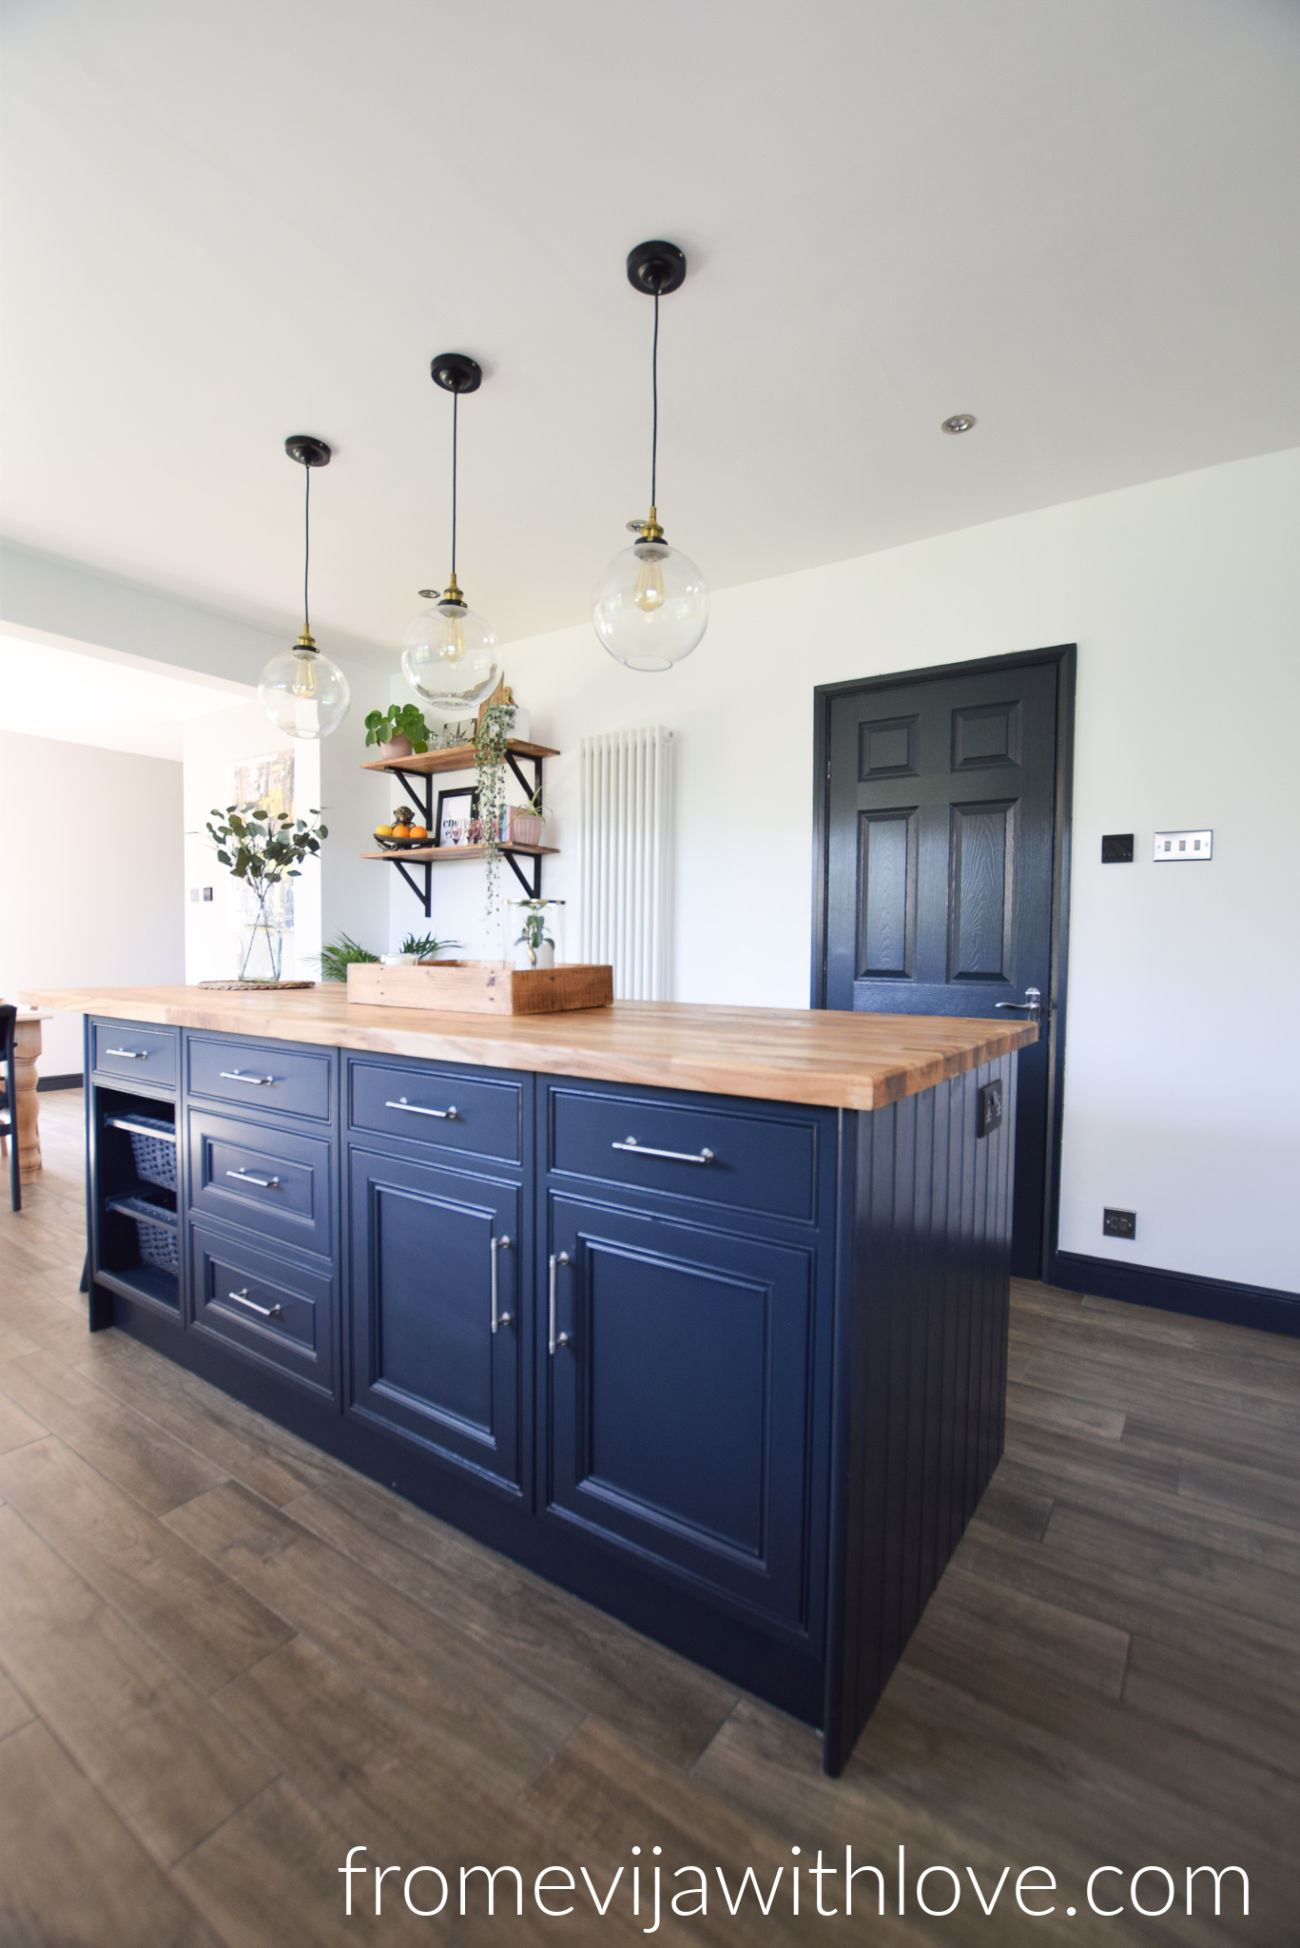 Farrow And Ball Railings Paint before & after: our diy kitchen renovation reveal - from